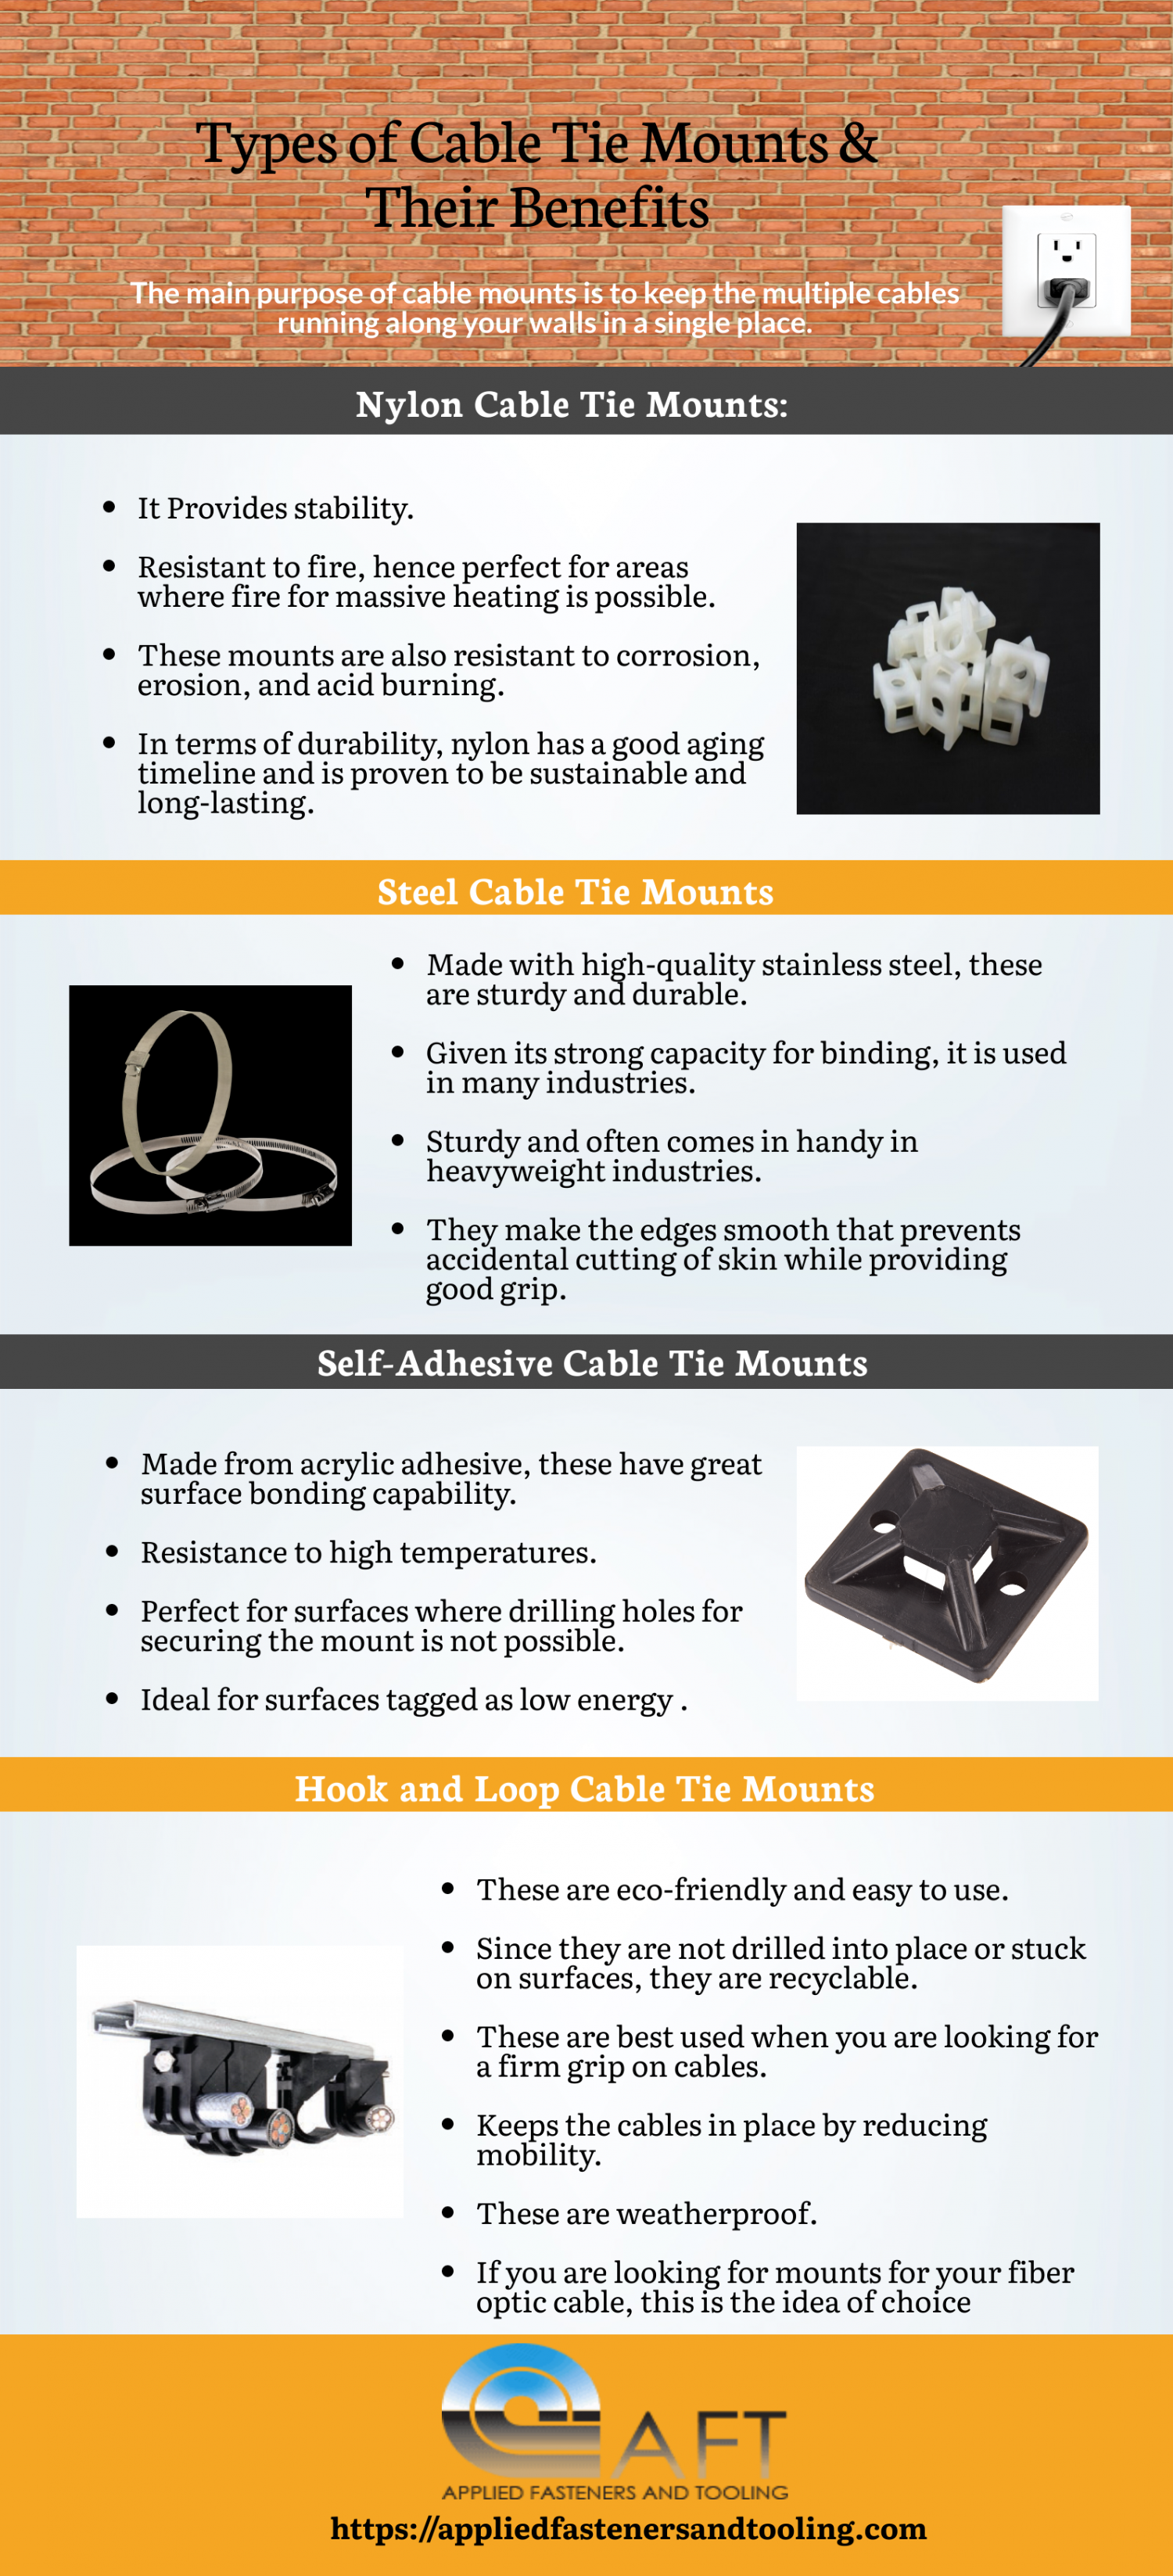 Types of Cable Tie Mounts & Their Benefits Infographic